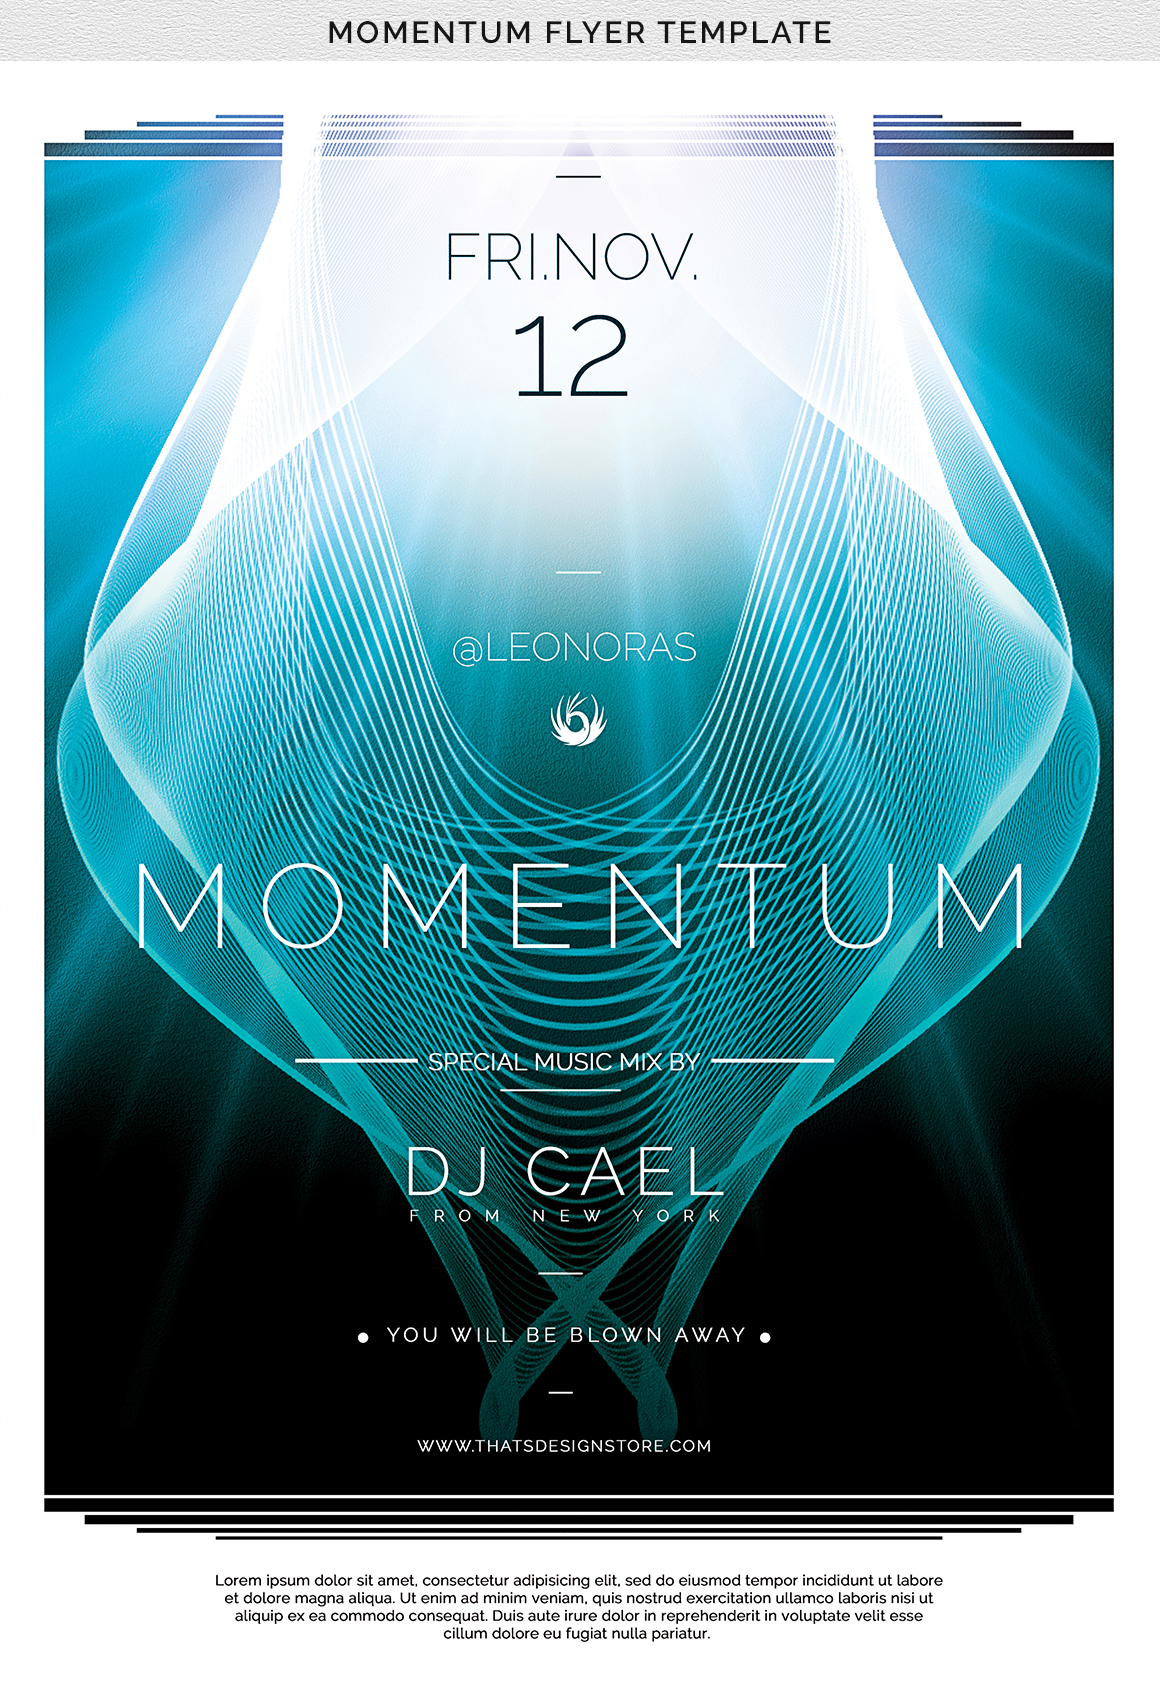 Momentum Flyer Template example image 9